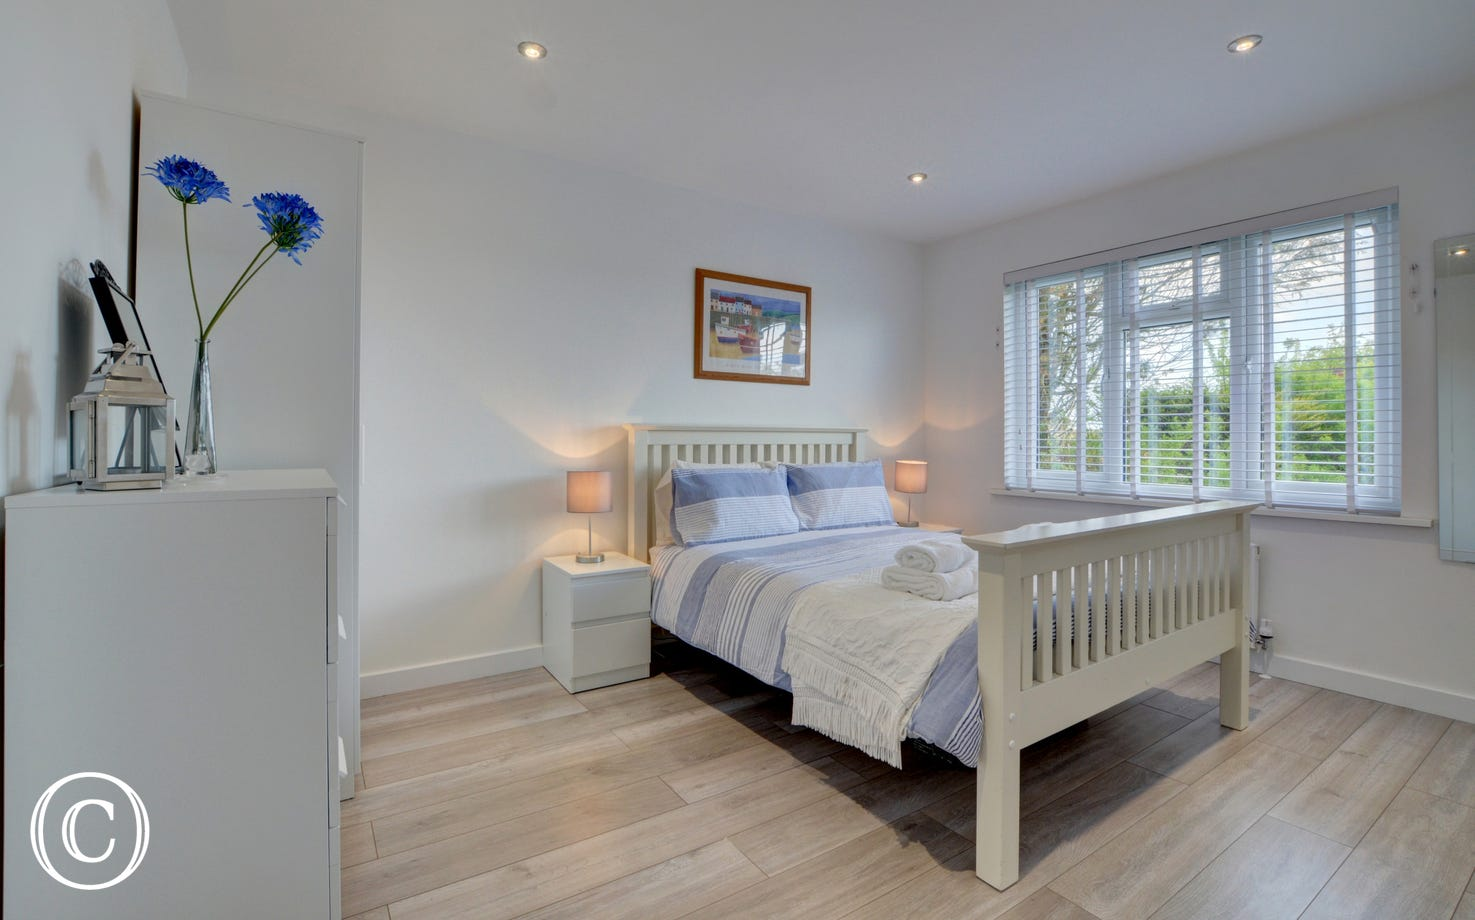 The double bedroom with garden views